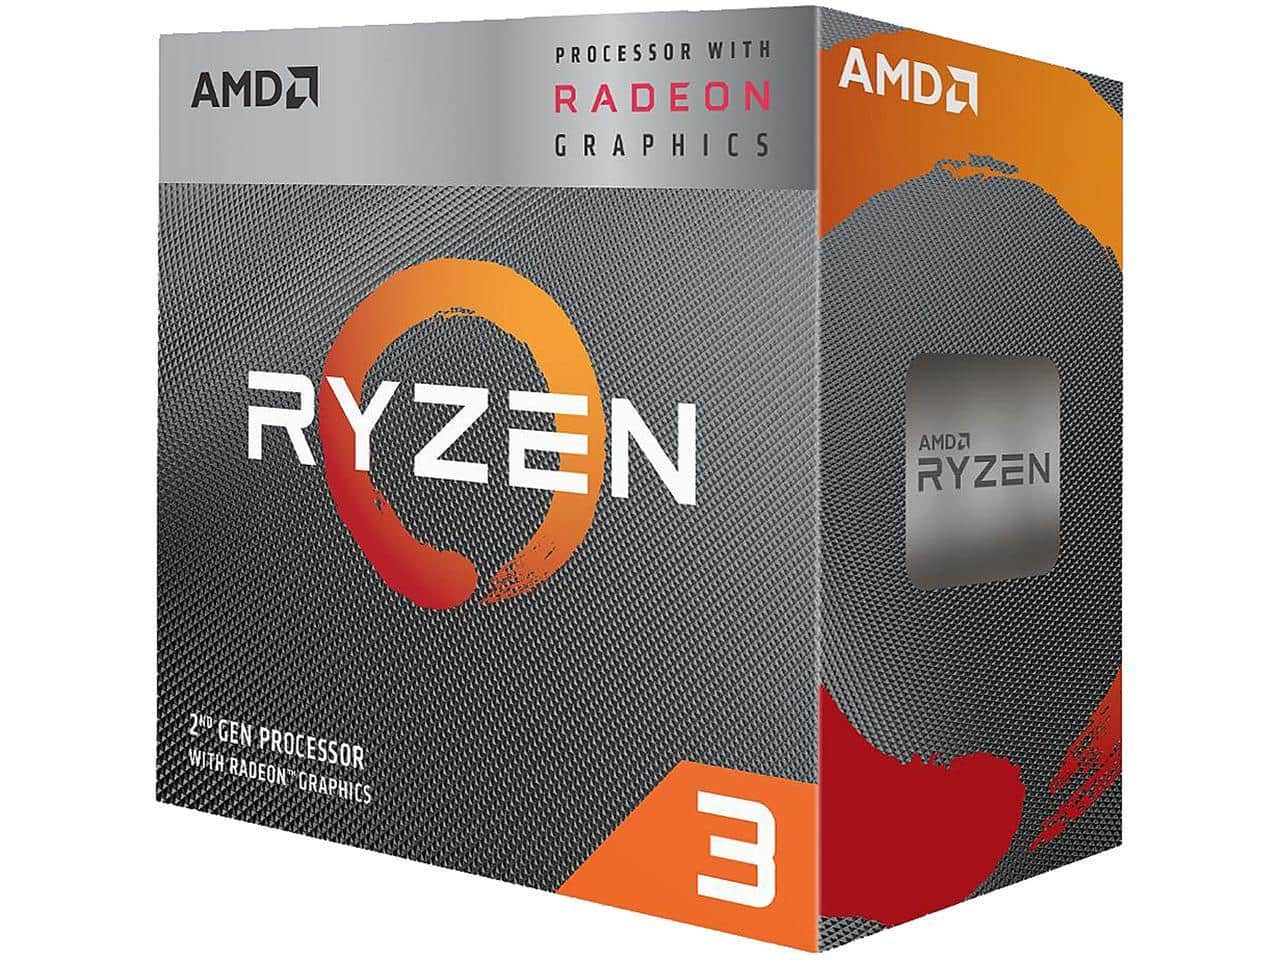 AMD – Ryzen 3 3200G Skt AM4 RX Vega 8 Graphics, Wraith Stealth Cooler